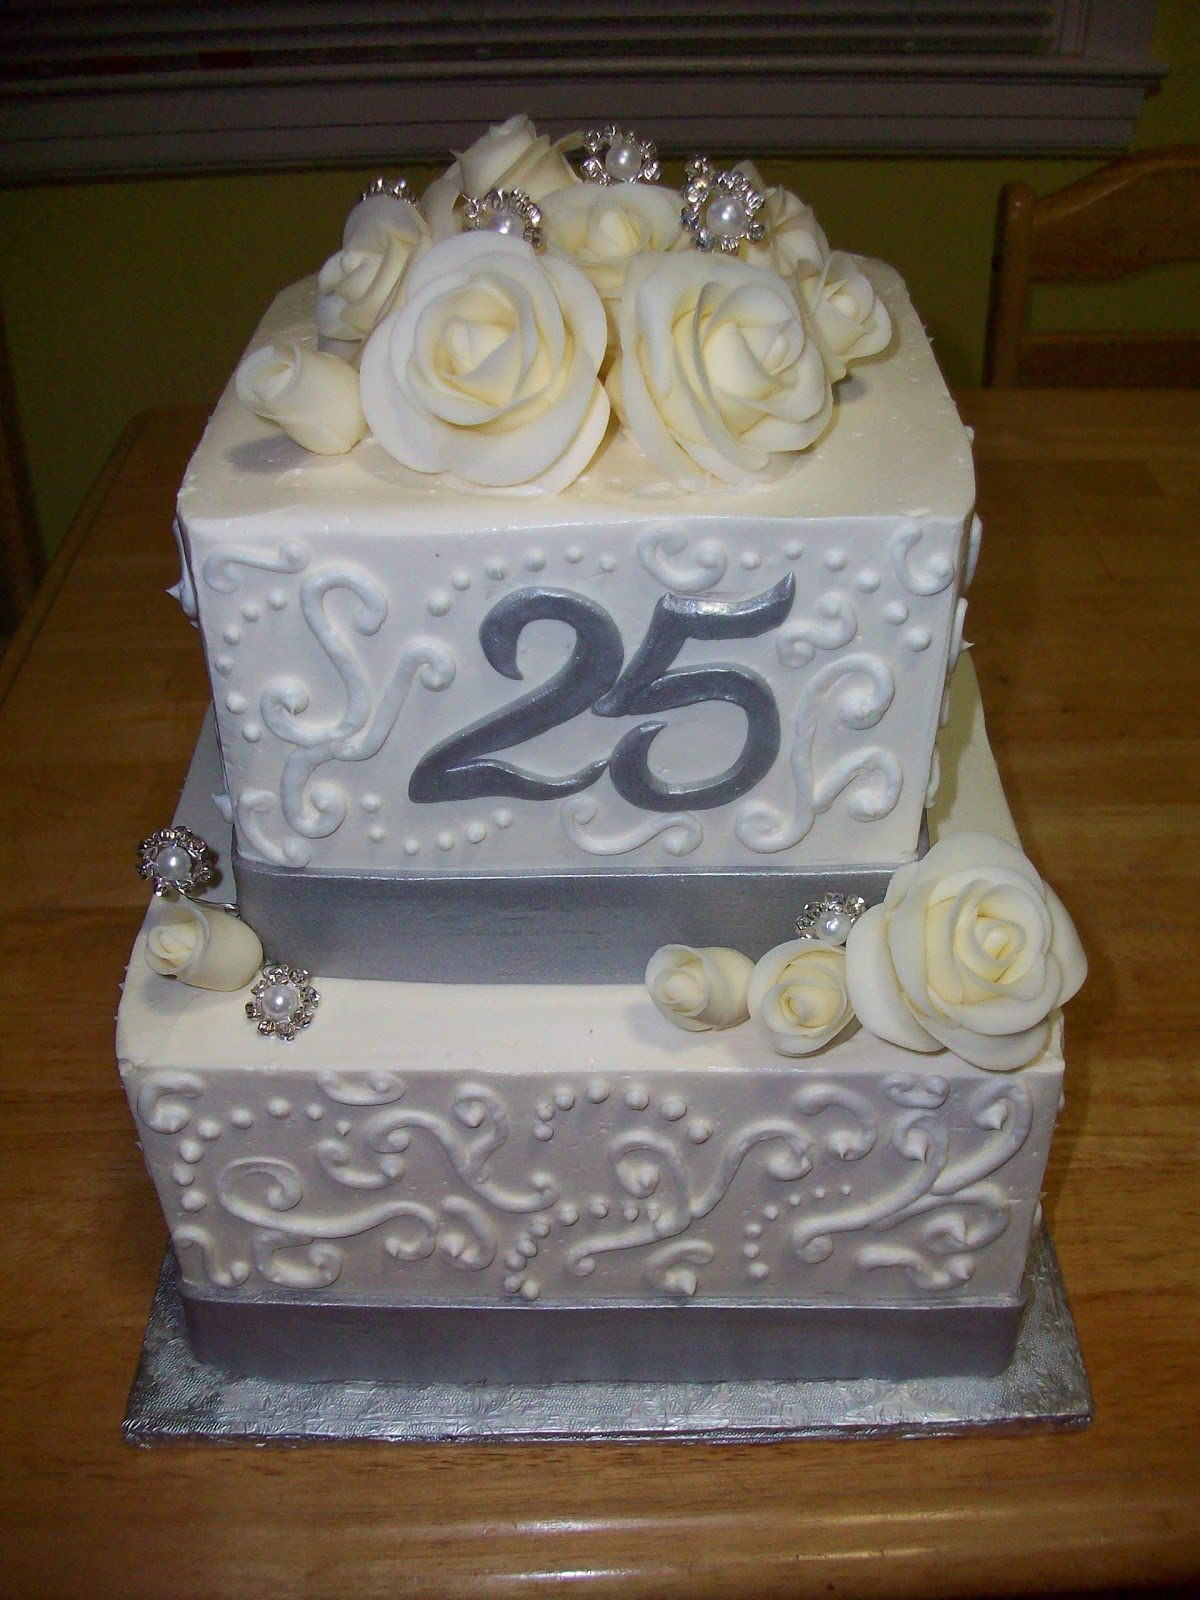 Download Images Of Anniversary Cake : Cakes by Monica P: 25th Anniversary Cake